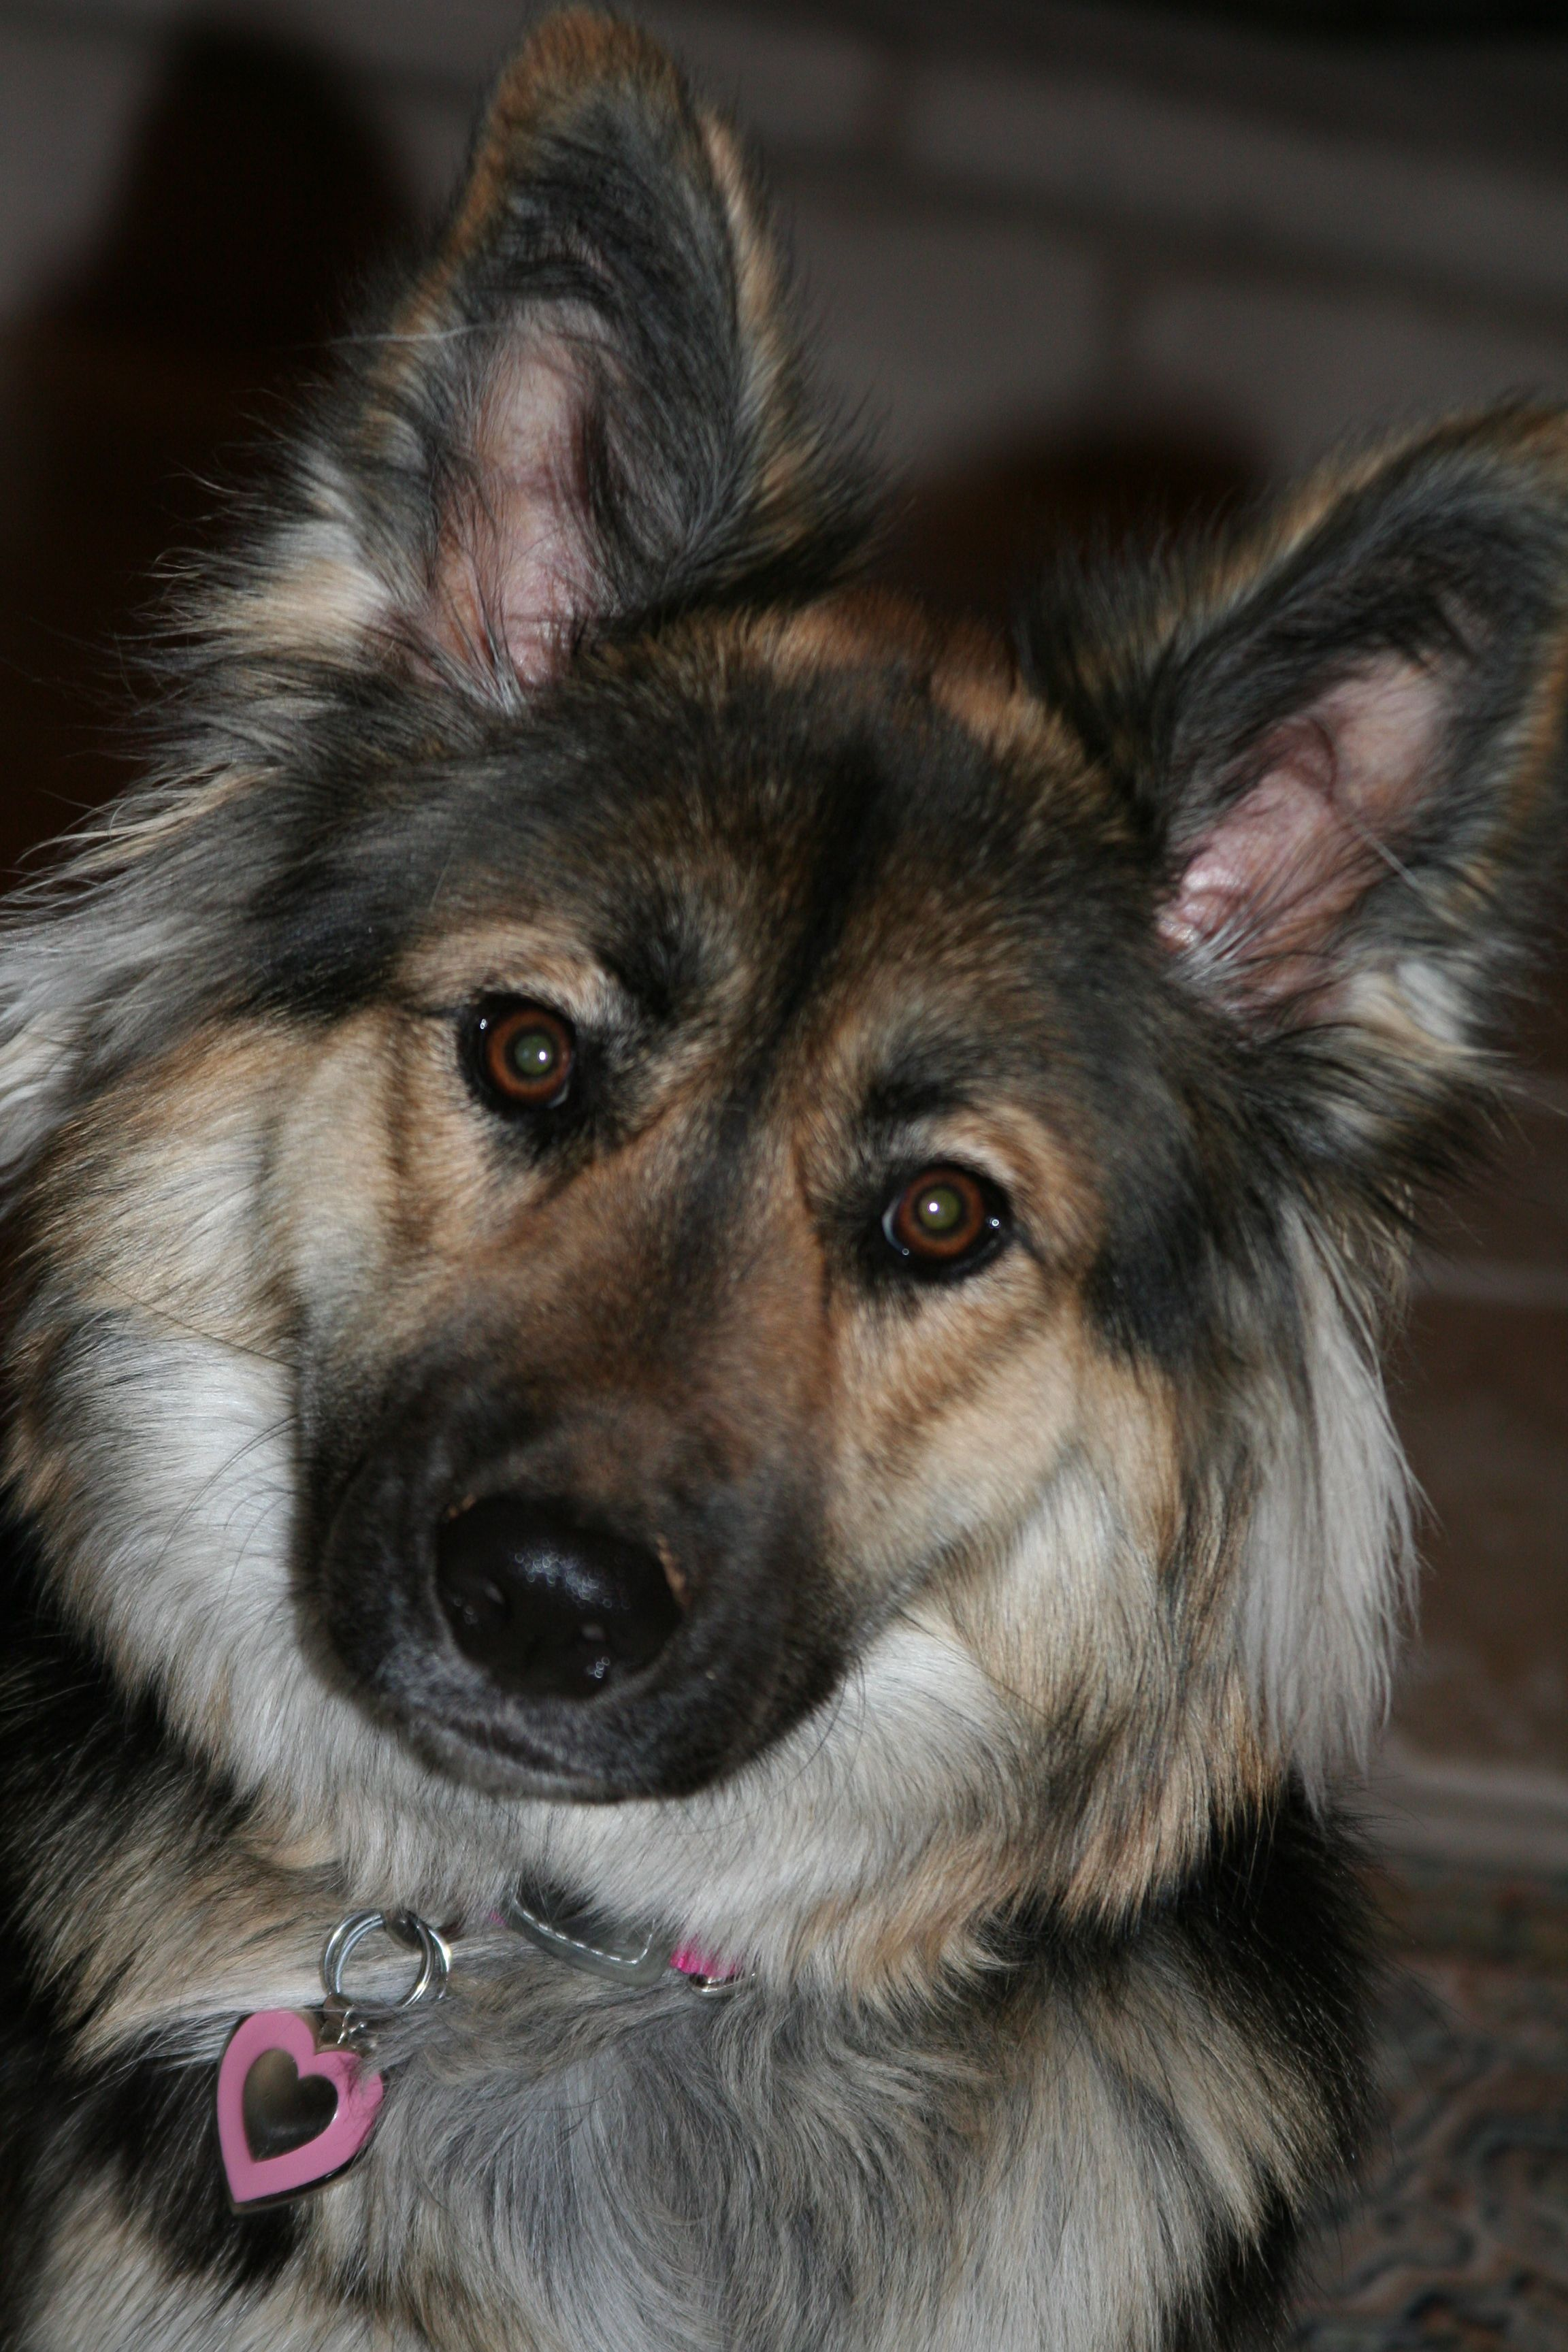 My Ger Bord Sky German Shepherd Border Collie Husky Mix Love Her Got To Love Those Mutts Animaux